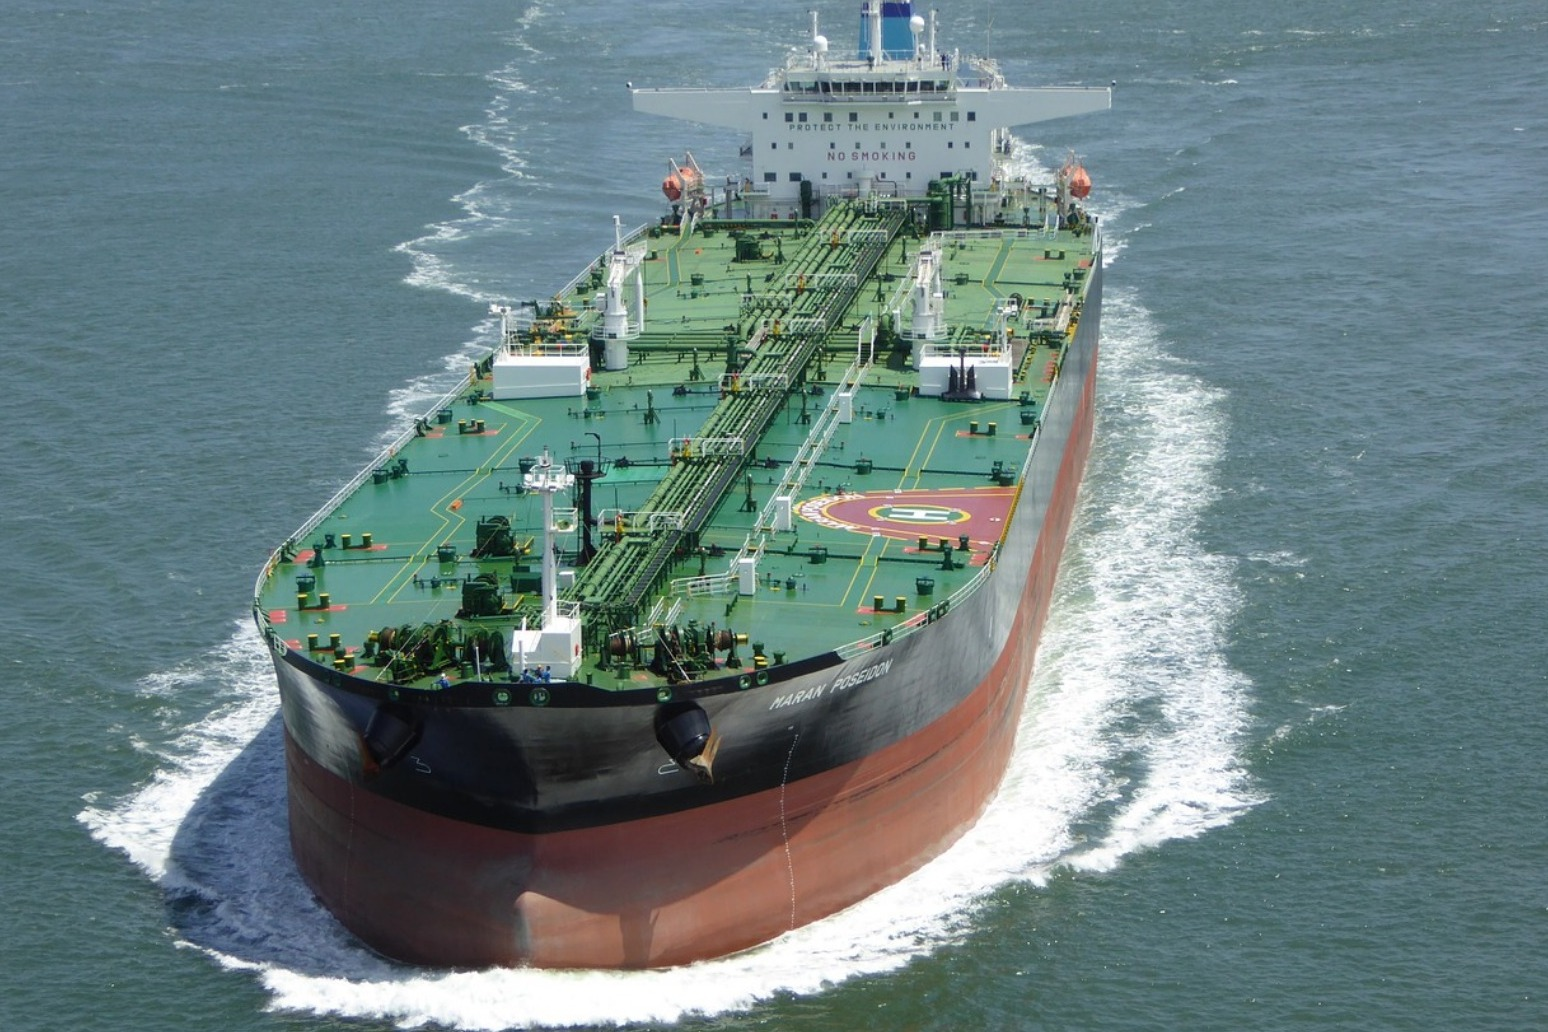 British oil tanker approached by Iranian boats in the Gulf